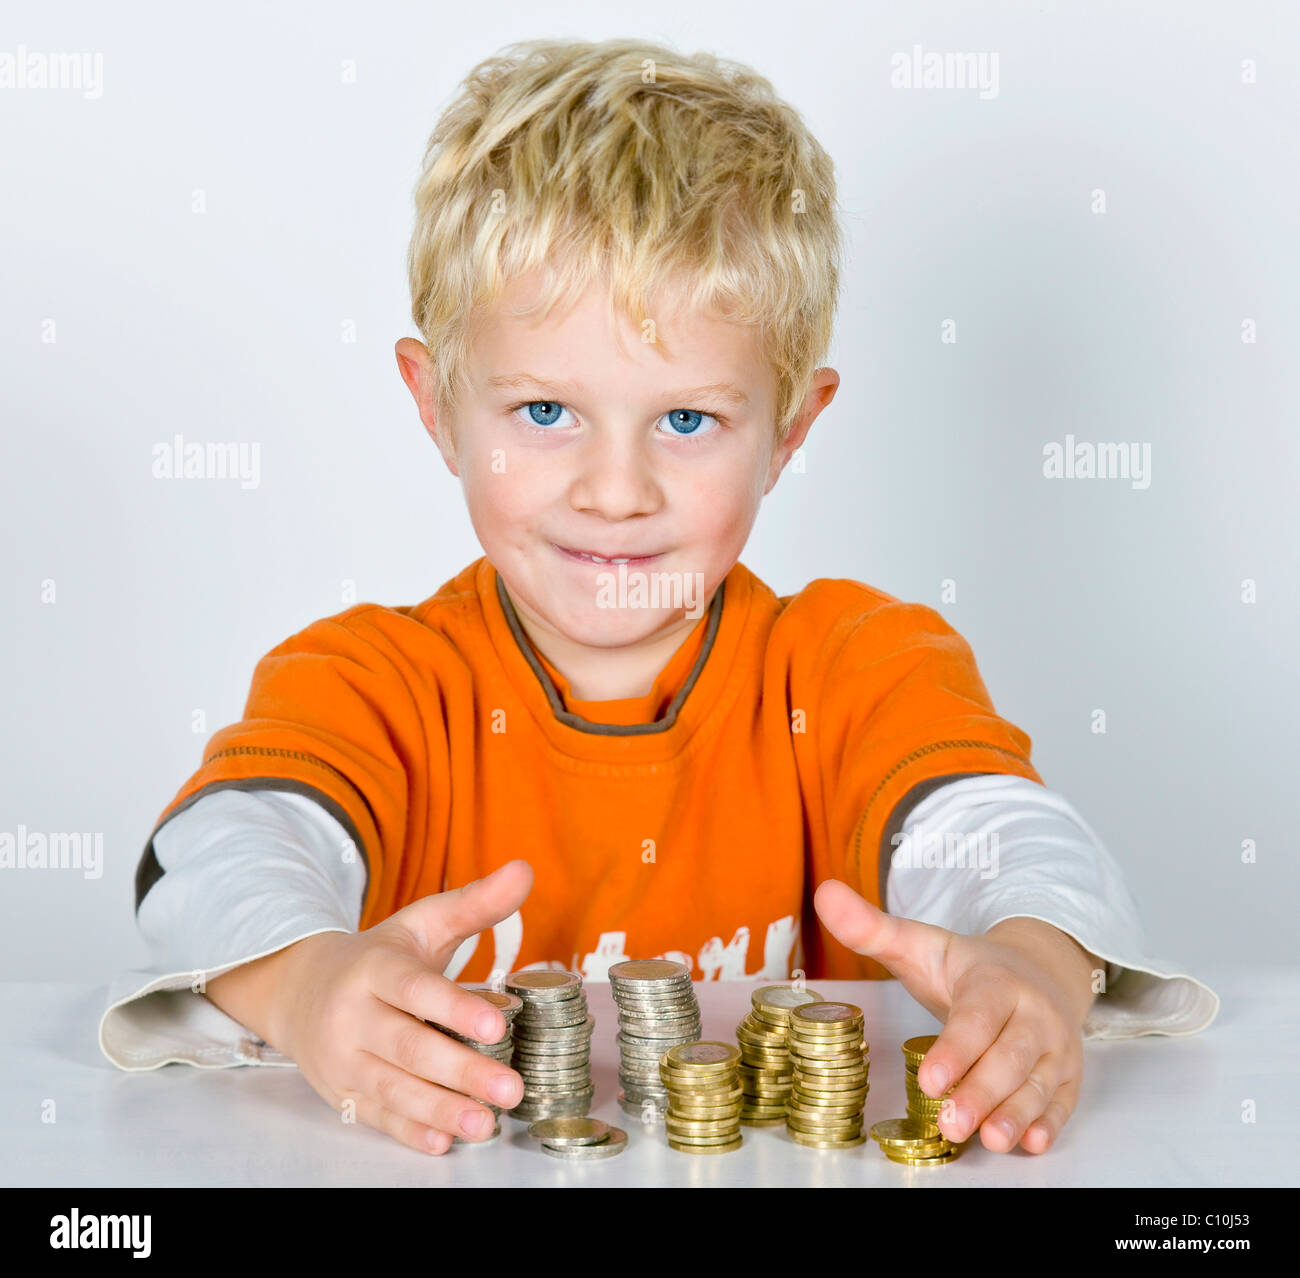 Boy, 5-years old, stacks of money, symbolic picture for making profit - Stock Image